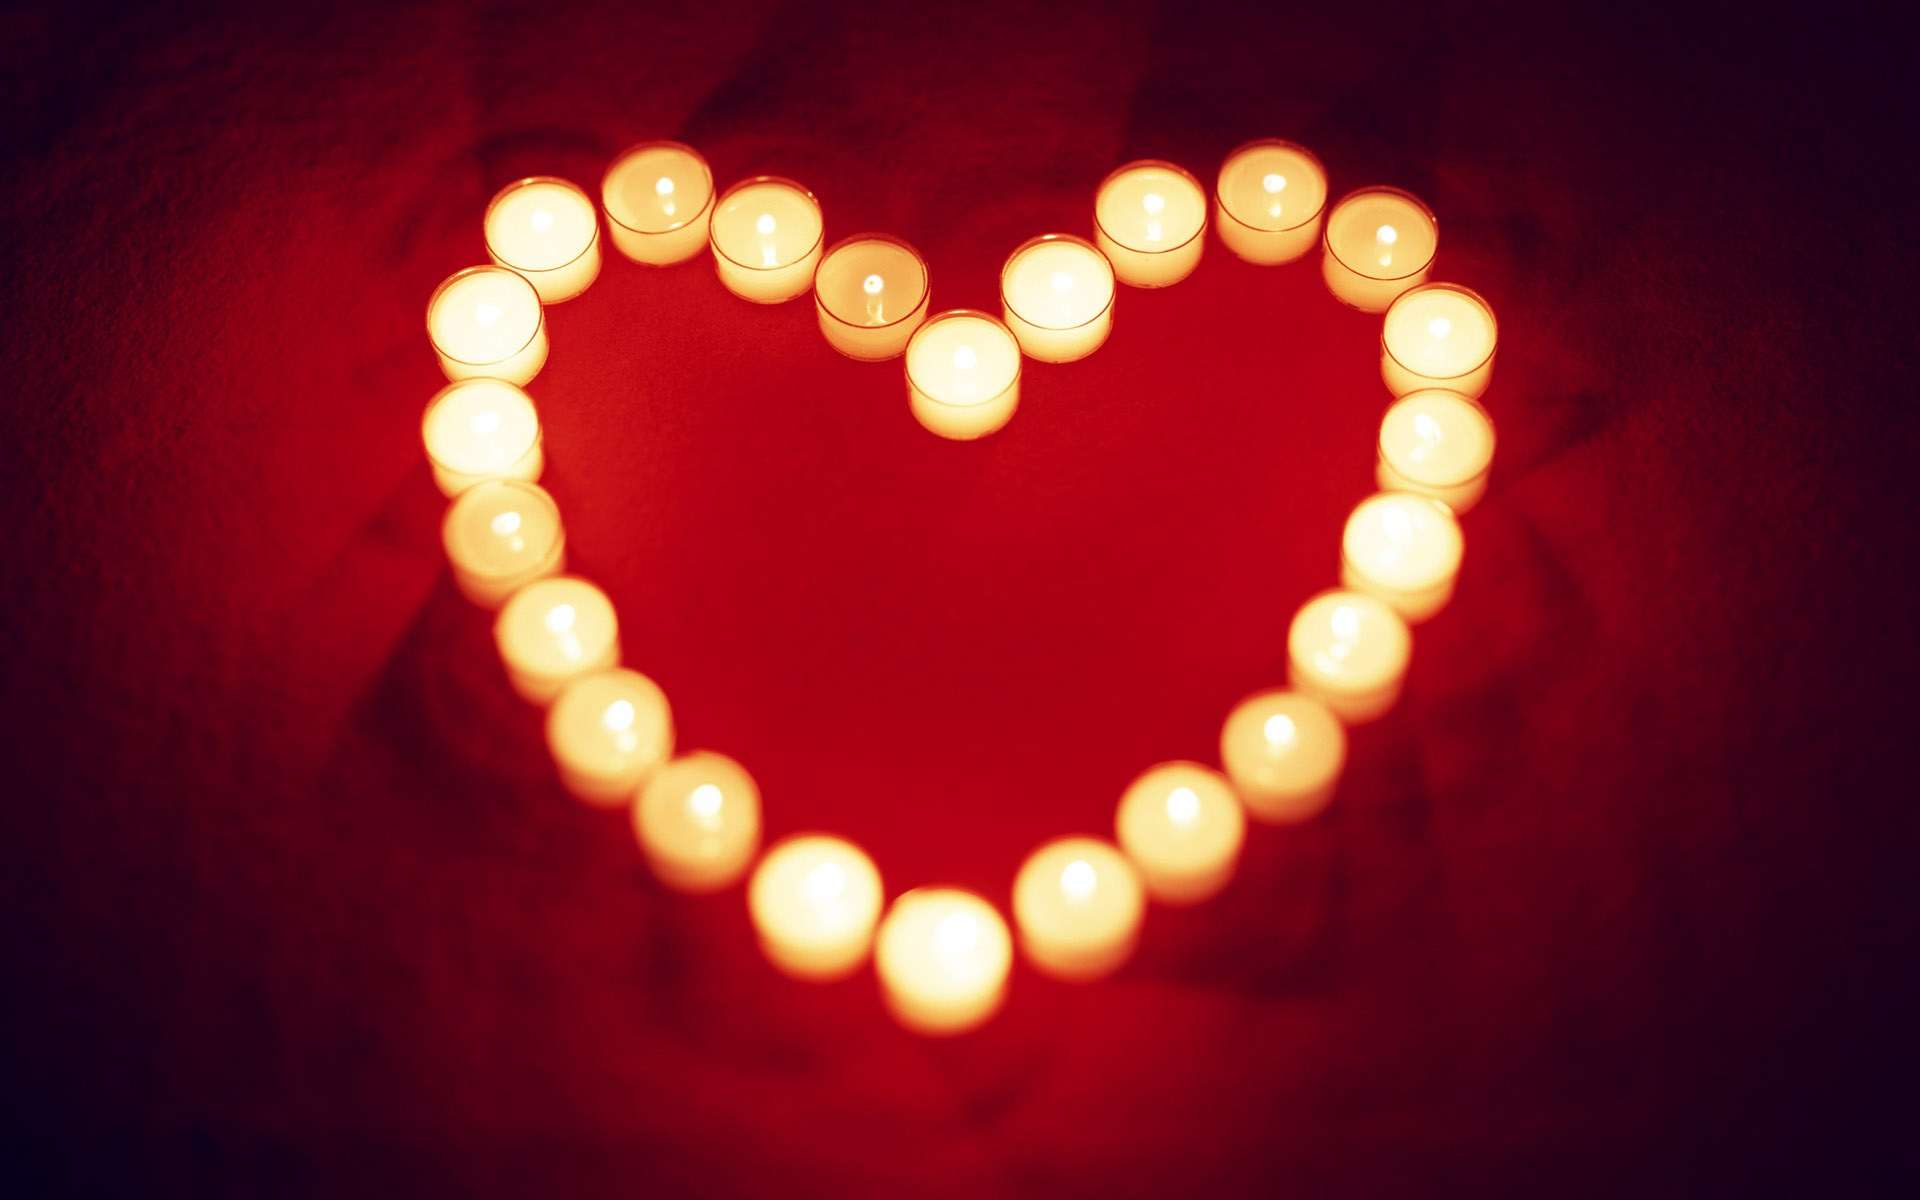 10 Top Cute Love Heart Wallpapers For Mobile Full Hd 1920: Wallpaper Warm And Loving Heart Shaped Candle 1920x1200 HD